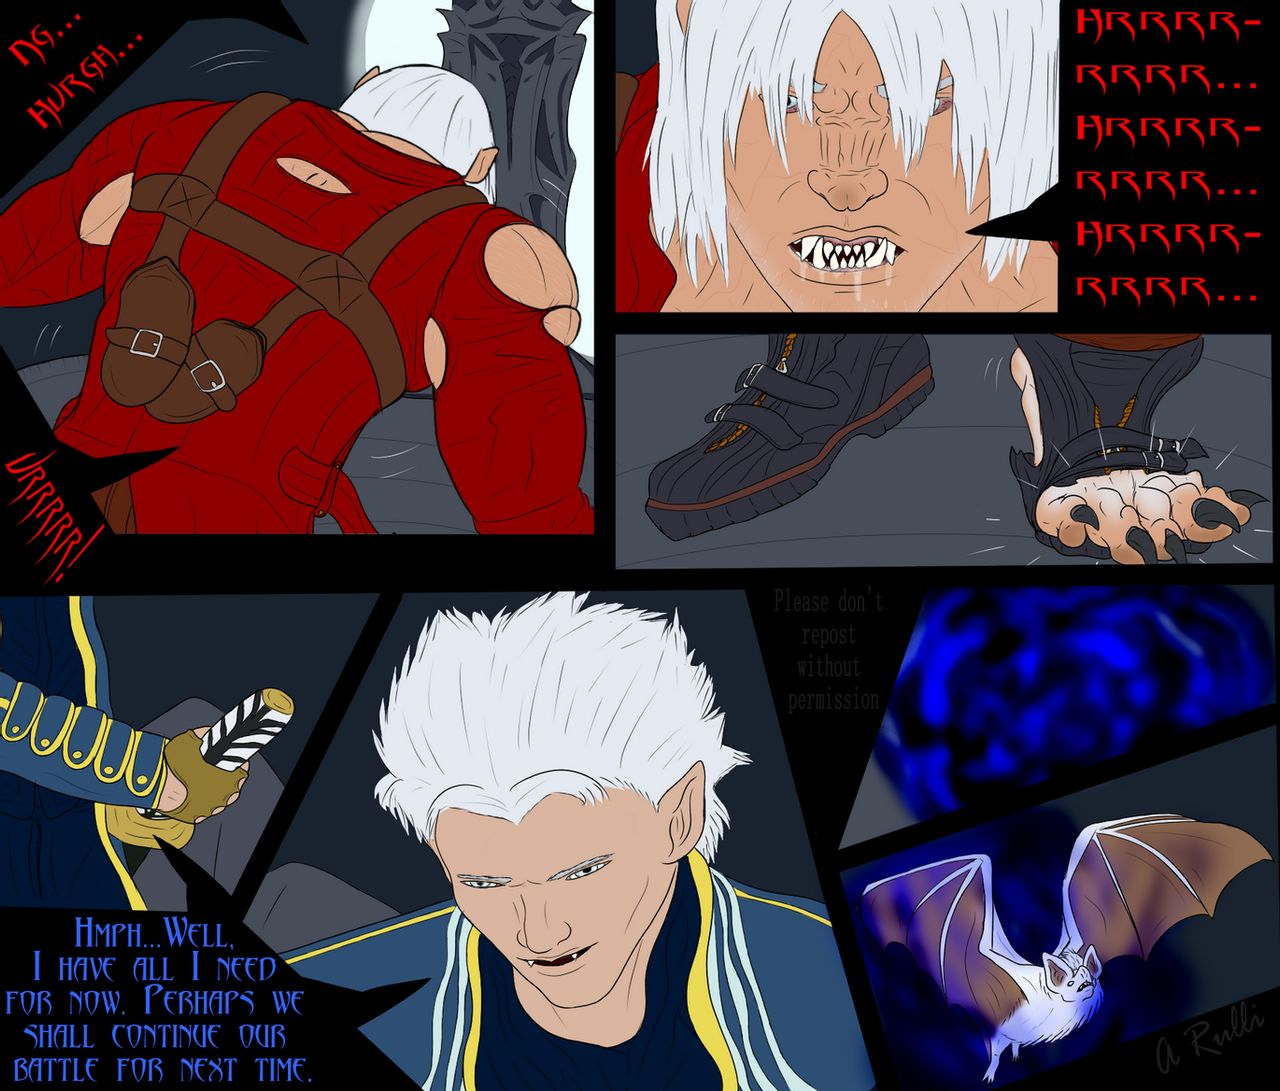 ($) Dante's Beastly Awakening Sequence (Warning: Blood) by Adaru32